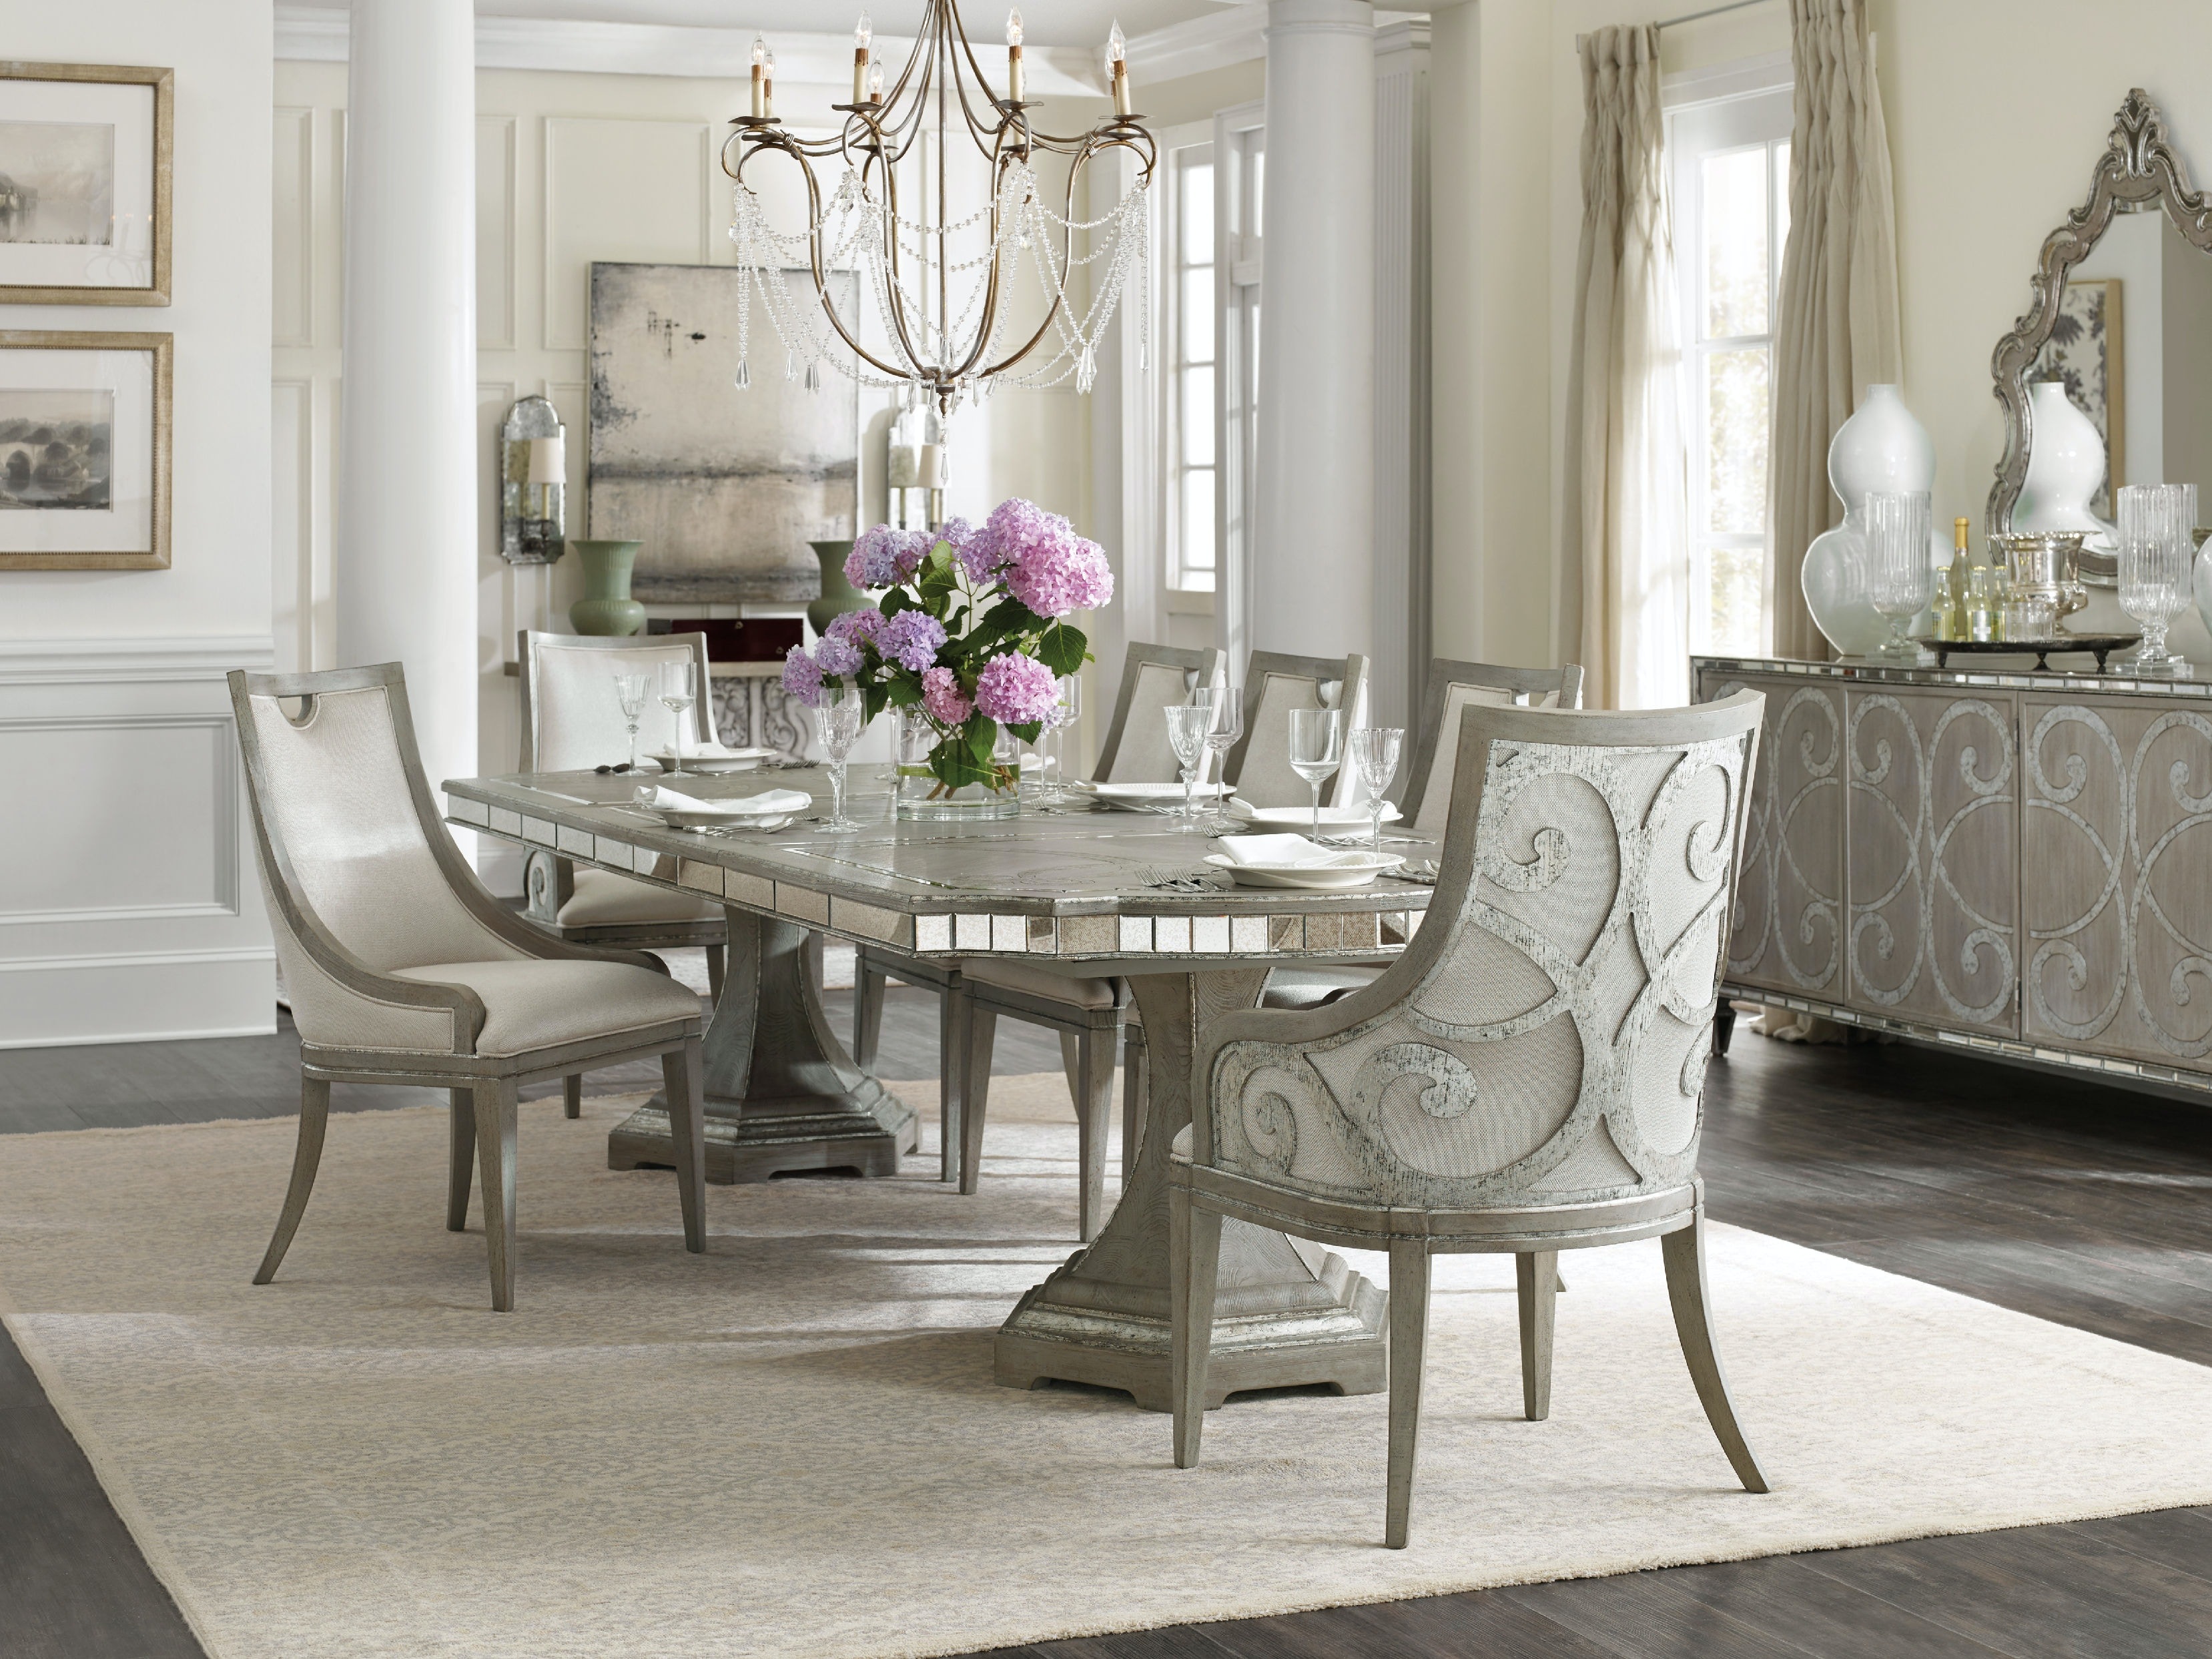 Hooker Furniture Dining Room Sanctuary Rectangle Dining Table W - Oblong dining table with leaf